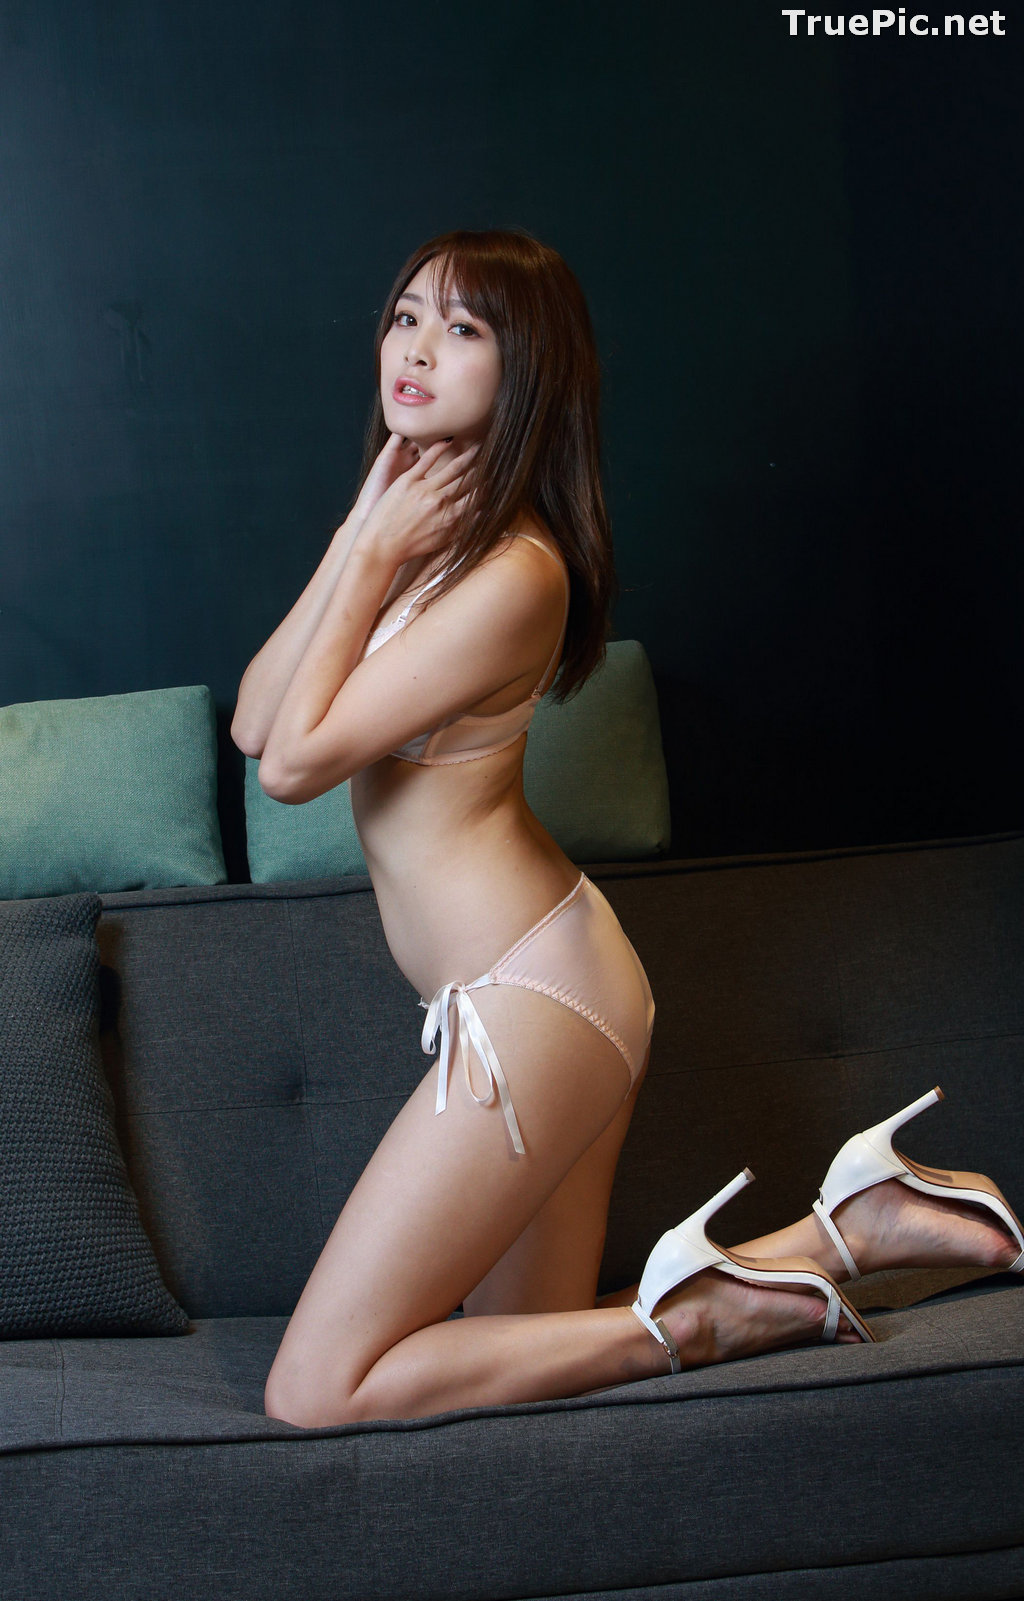 Image Taiwanese Model - Ash Ley - Sexy Girl and White Lingerie - TruePic.net - Picture-2